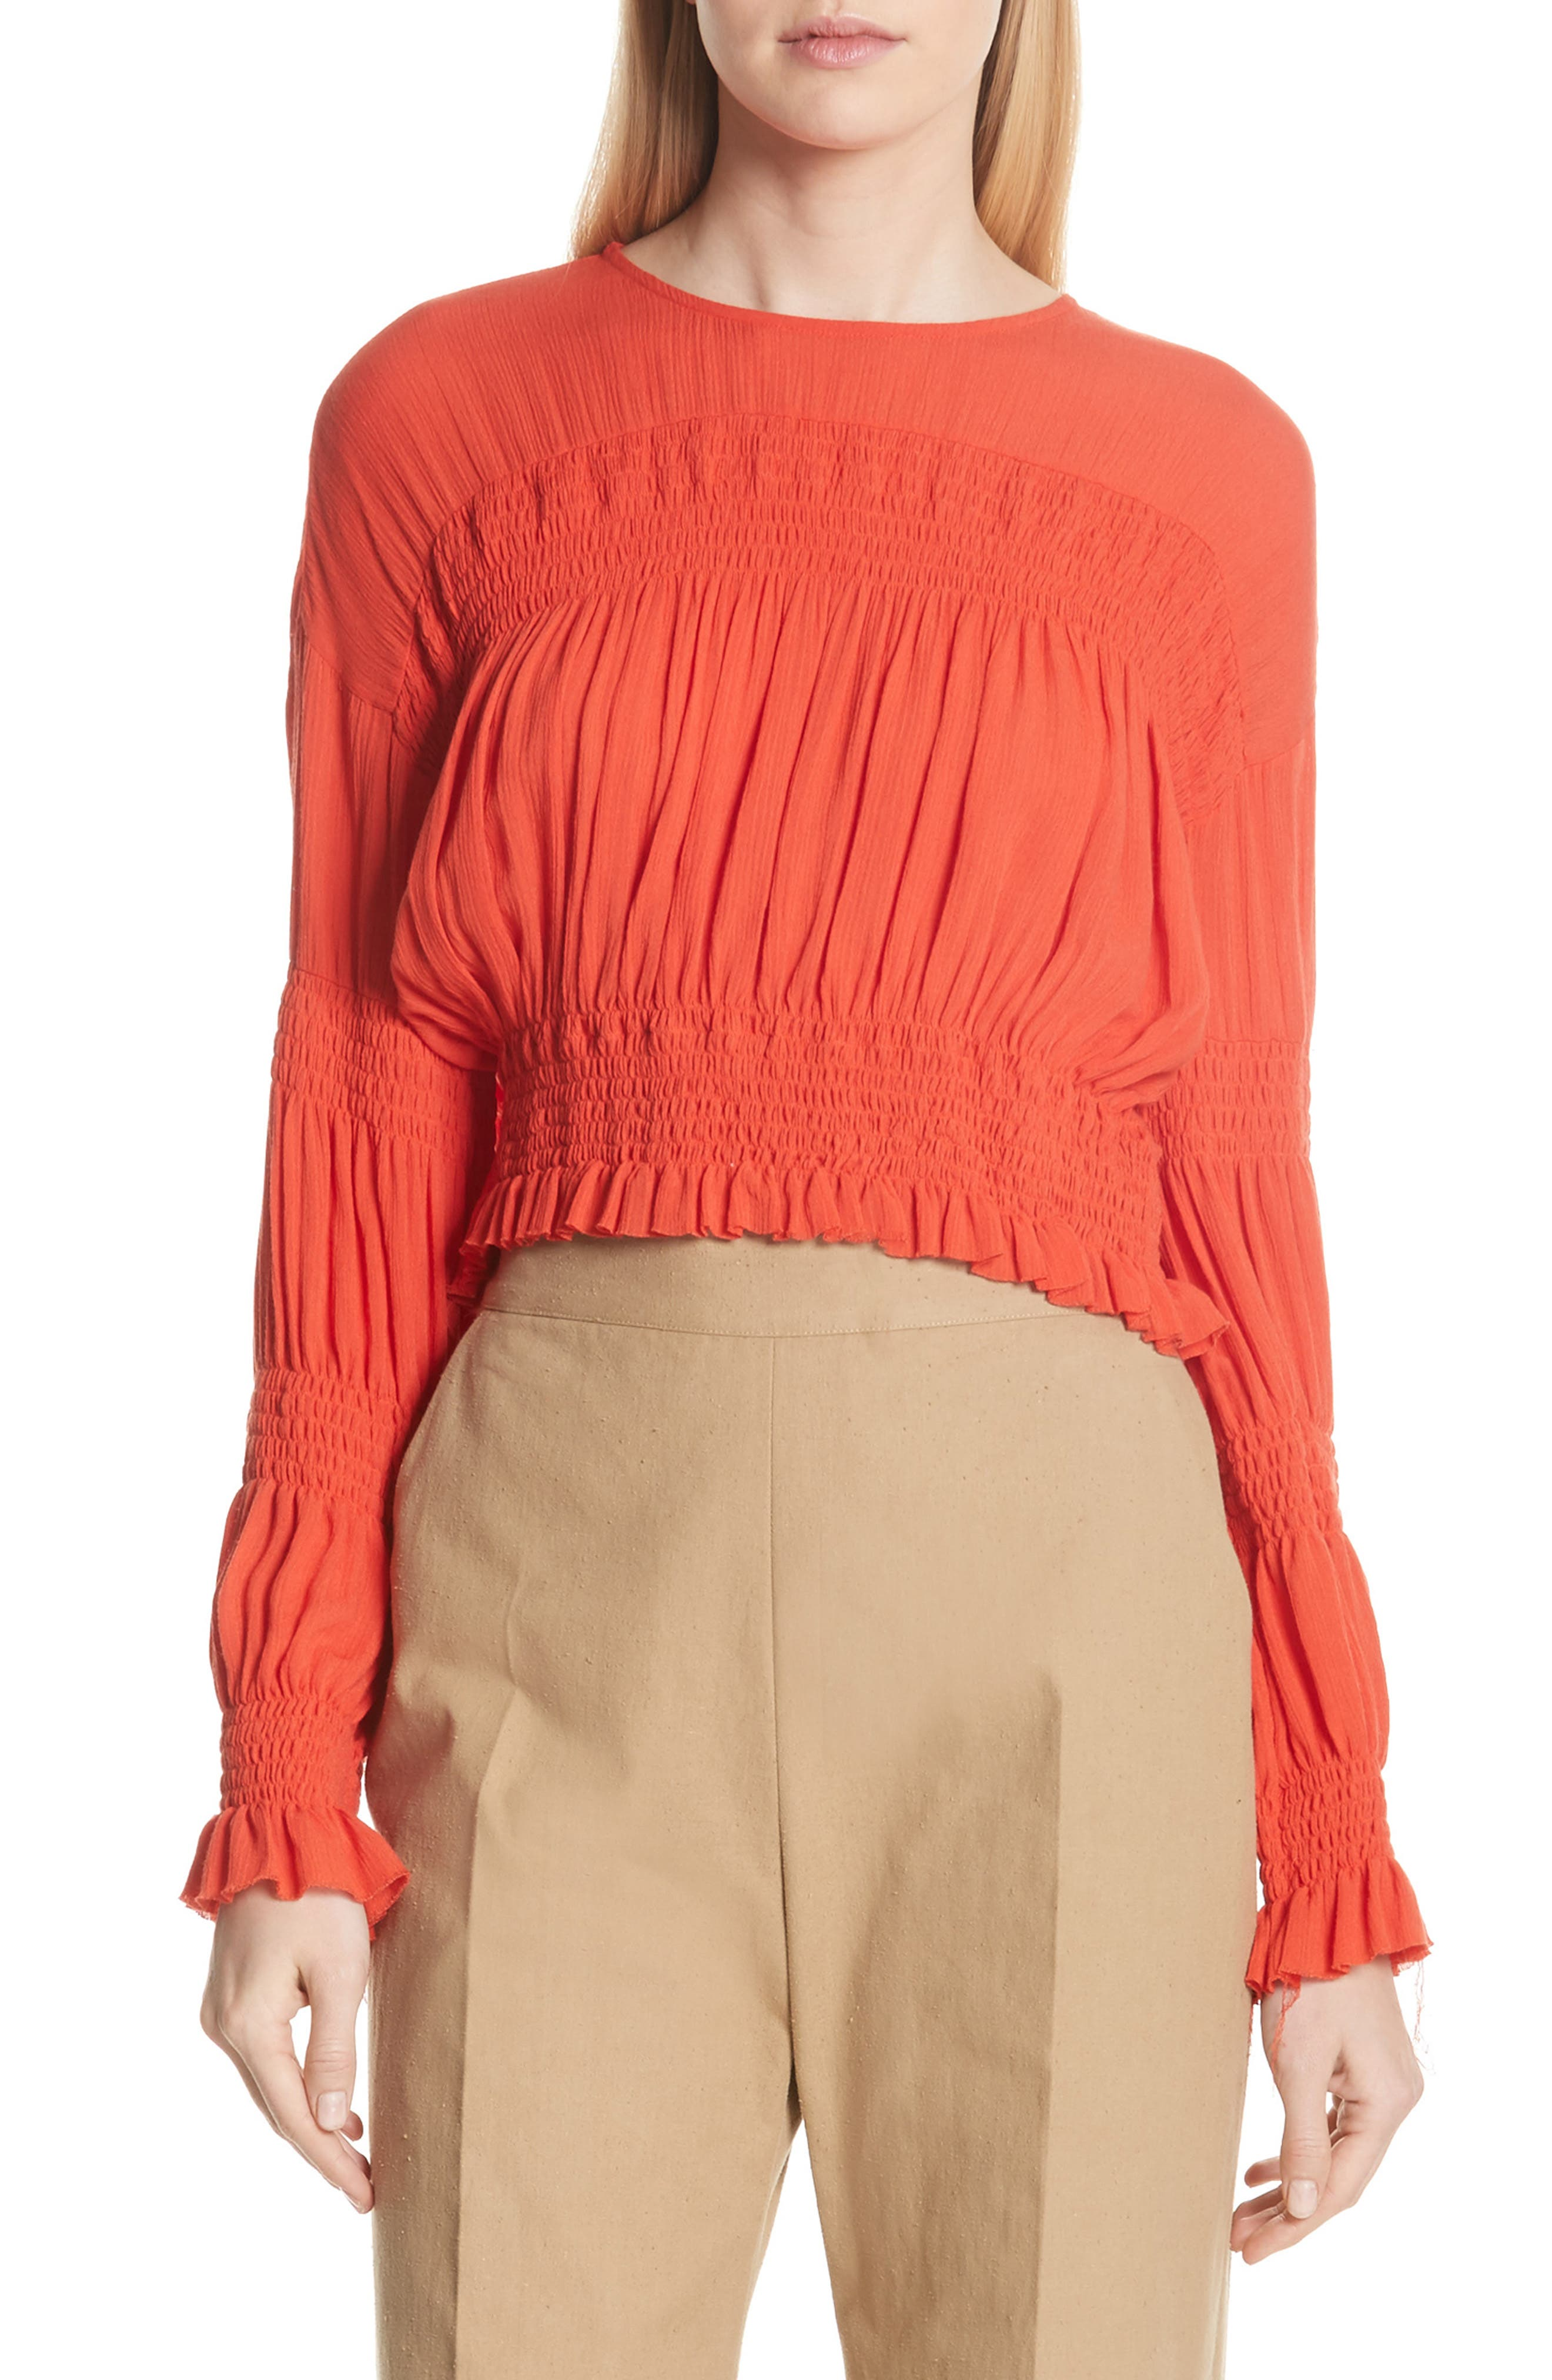 Penta Smocked Blouse,                         Main,                         color, CORAL